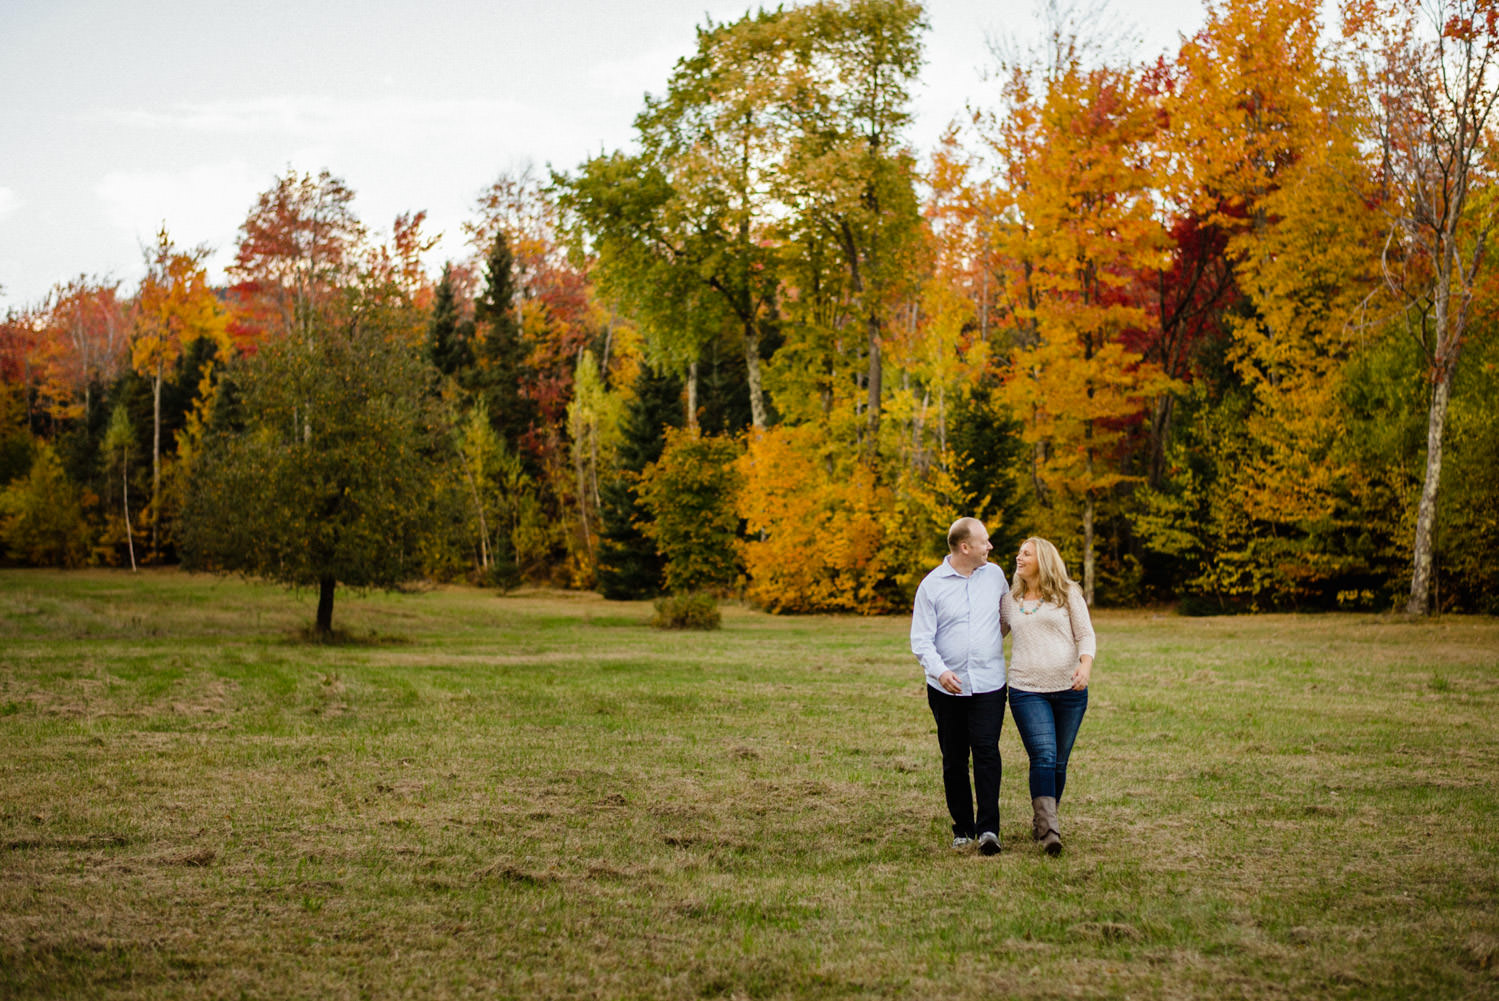 Vermont Fall Colors Engagement couple walking arm-in-arm photo